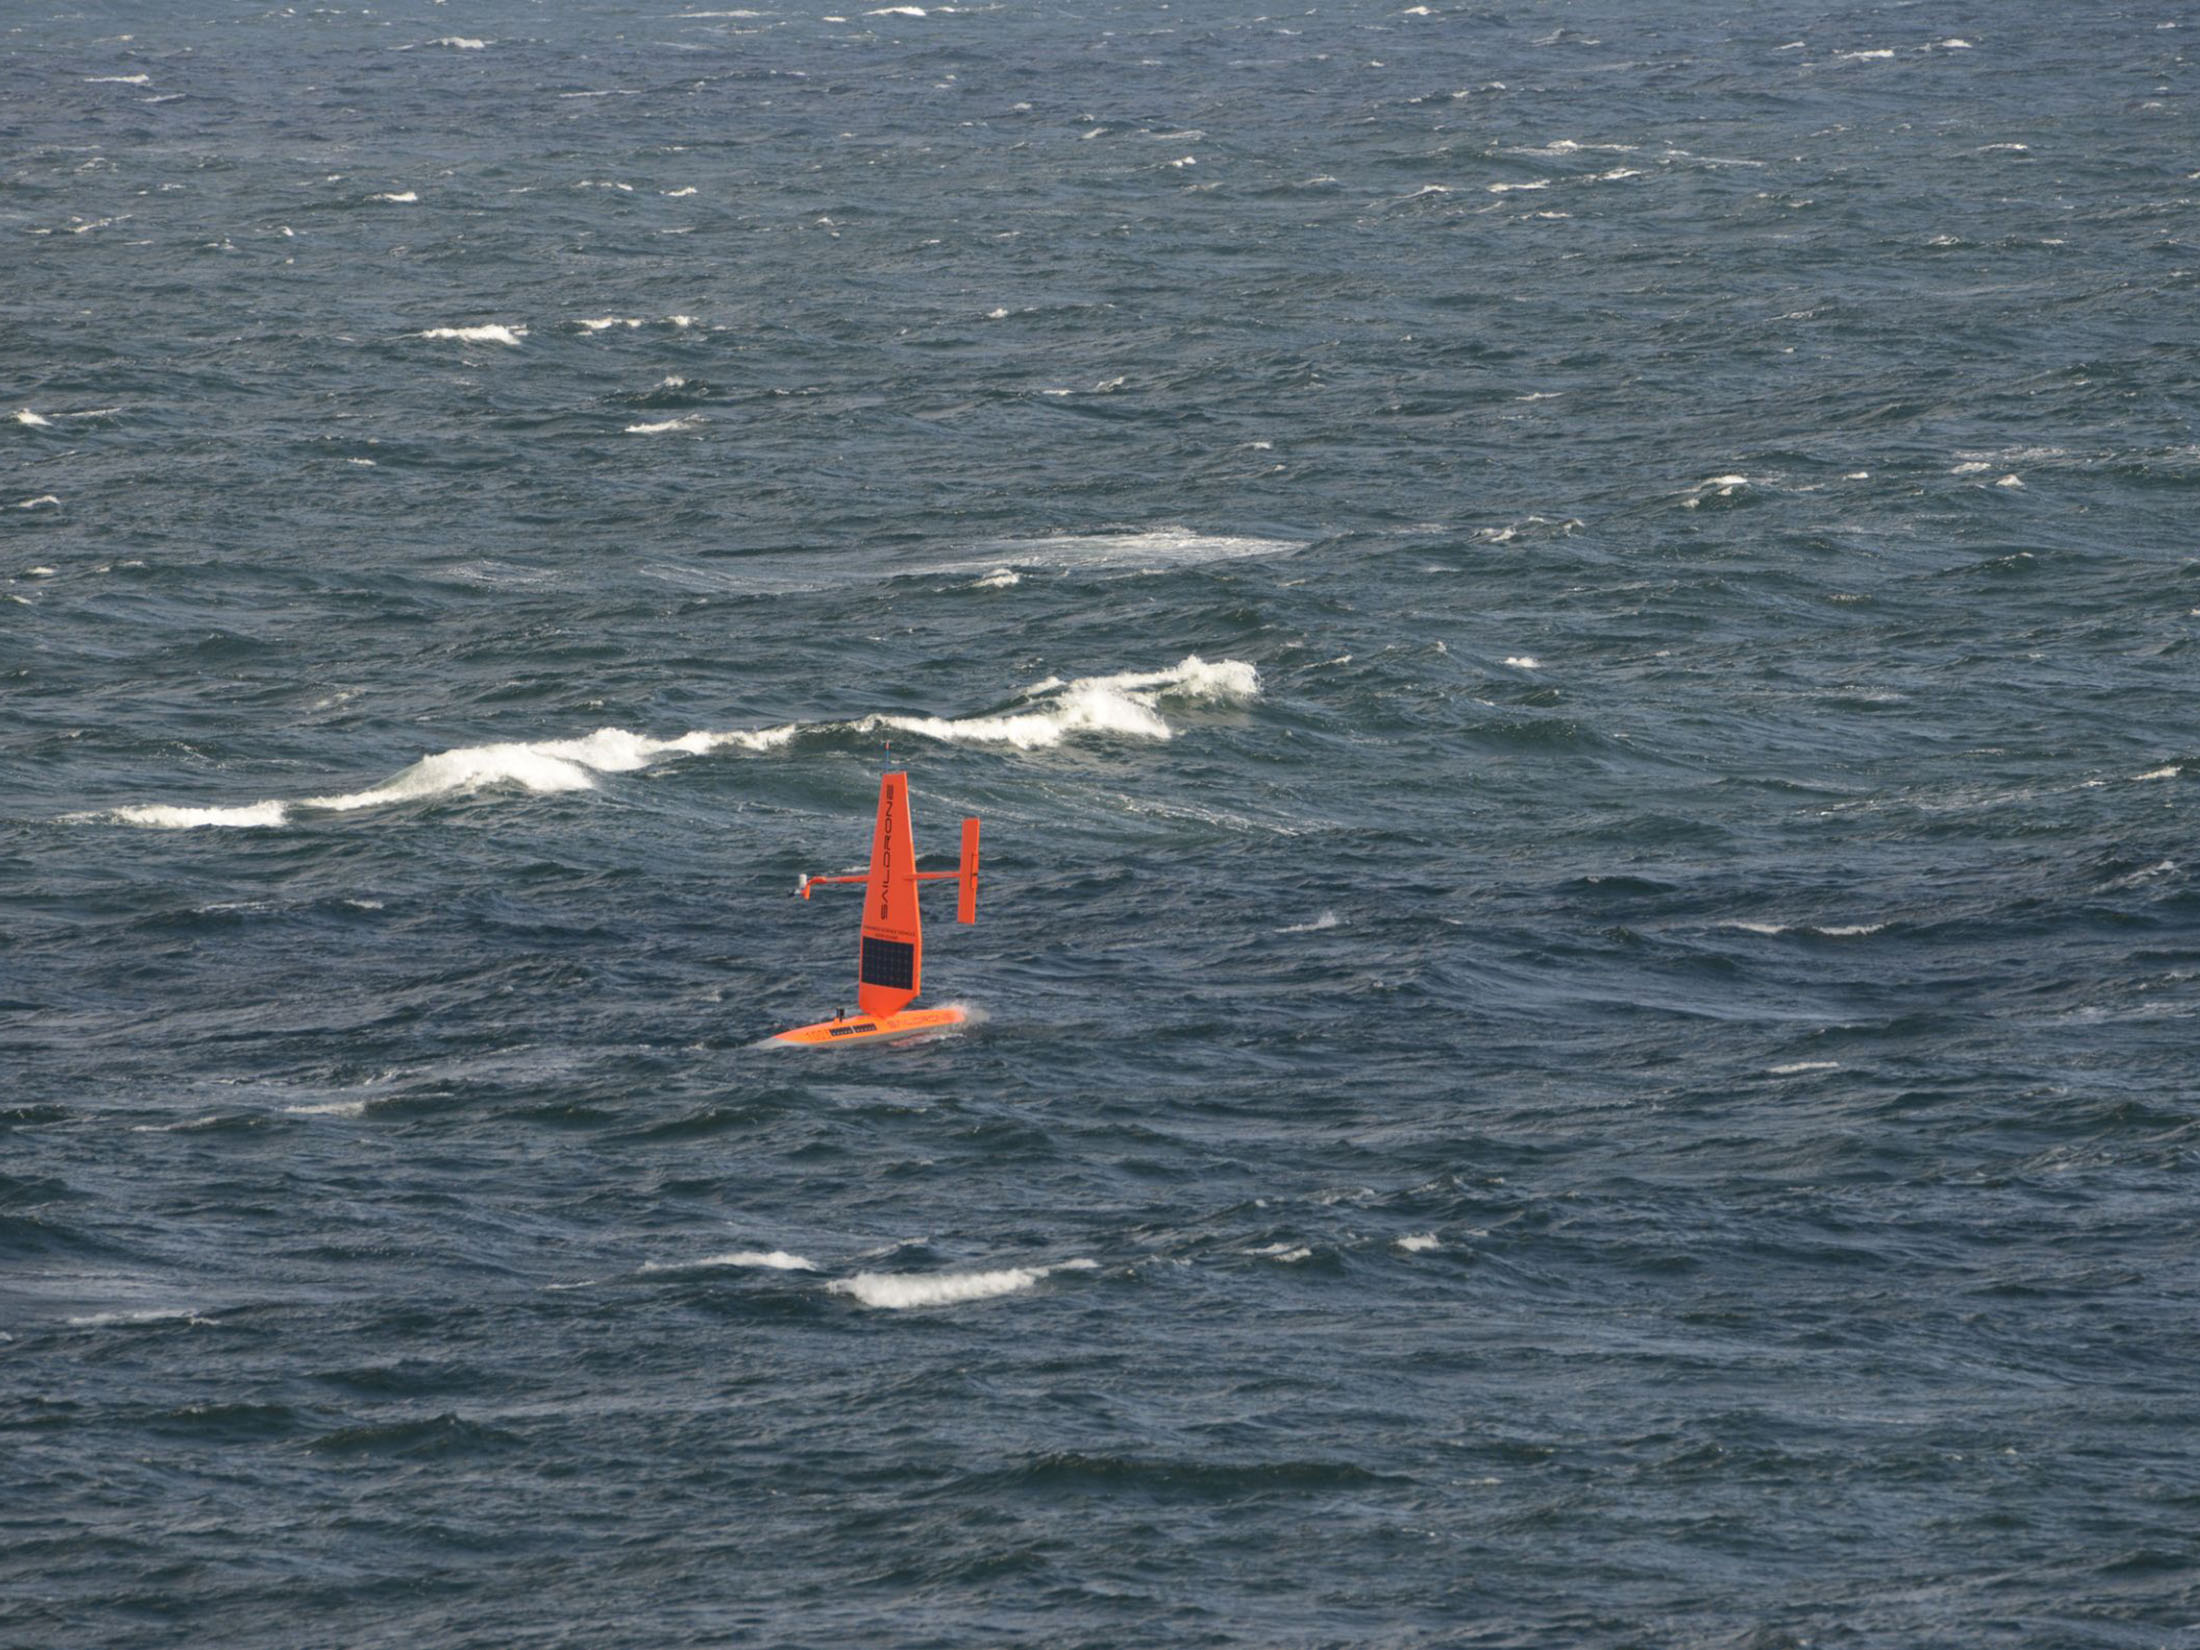 Saildrone surveying in the Arctic